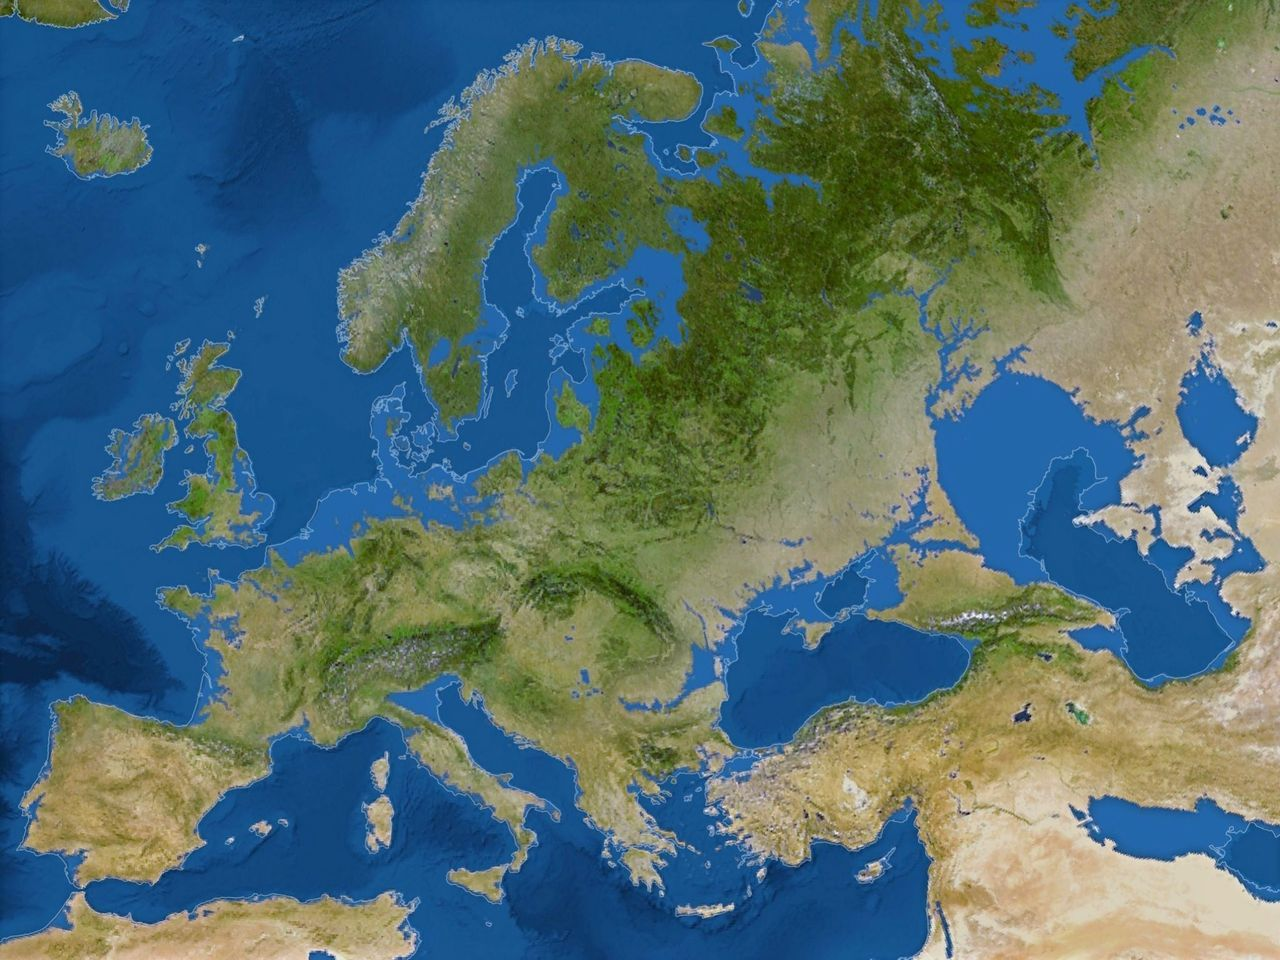 Map of Europe after a 216 foot sea level rise | Anthropocene ... Sea Level Rise Map on 2100 sea level map, sea level history map, global sea rise map, above sea level map, sea level map of world, climate map, sea level nc map, new jersey sea level map, lower sea level map, interactive sea level map, new york sea level map, sea surface temperature, new orleans below sea level map, sea level fall map, sea rise predictions map, texas sea level map, united states sea level map, sea rise map projections, sea water rise, under sea level map,